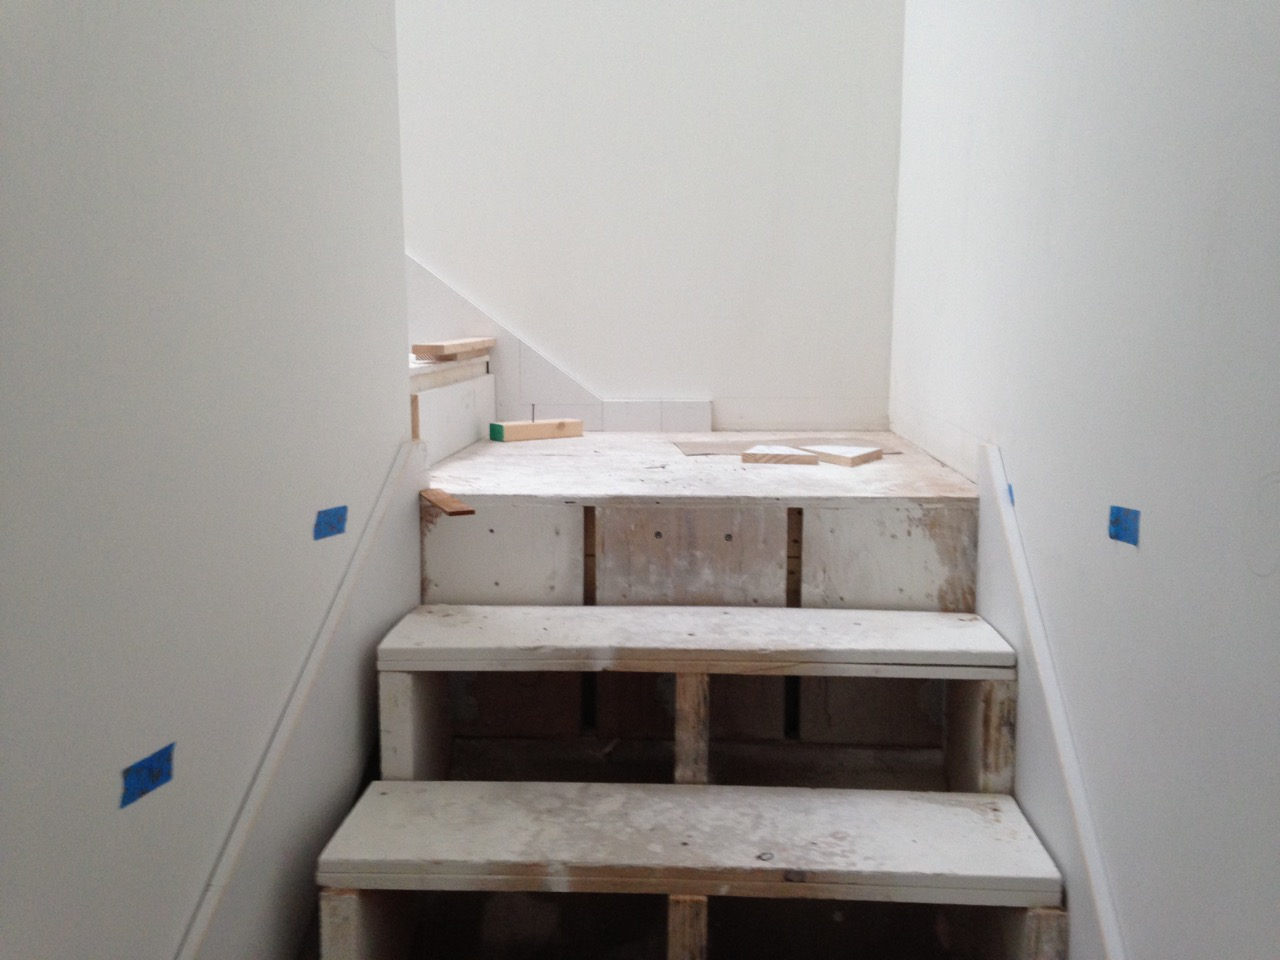 Stair in process